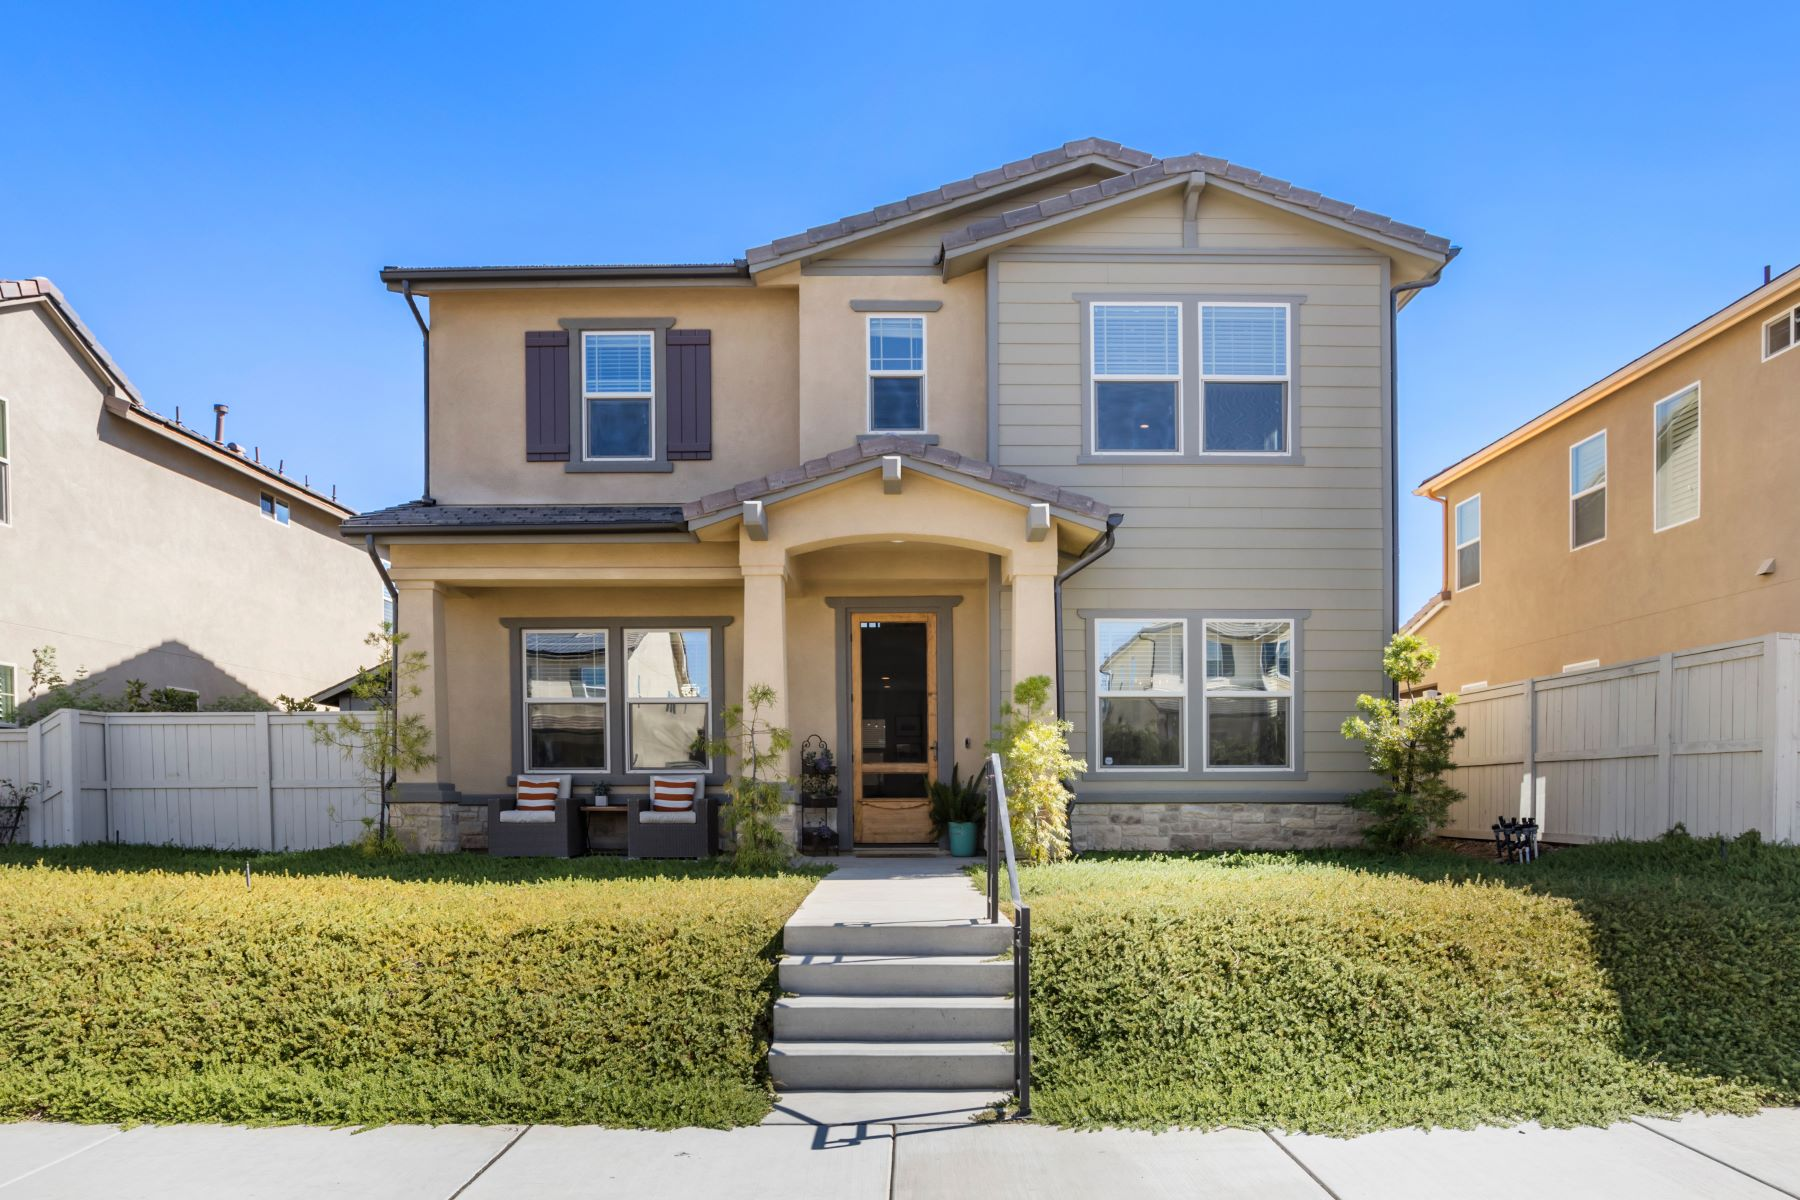 Single Family Homes for Sale at 2922 Fledging Drive 2922 Fledgling Drive Escondido, California 92029 United States